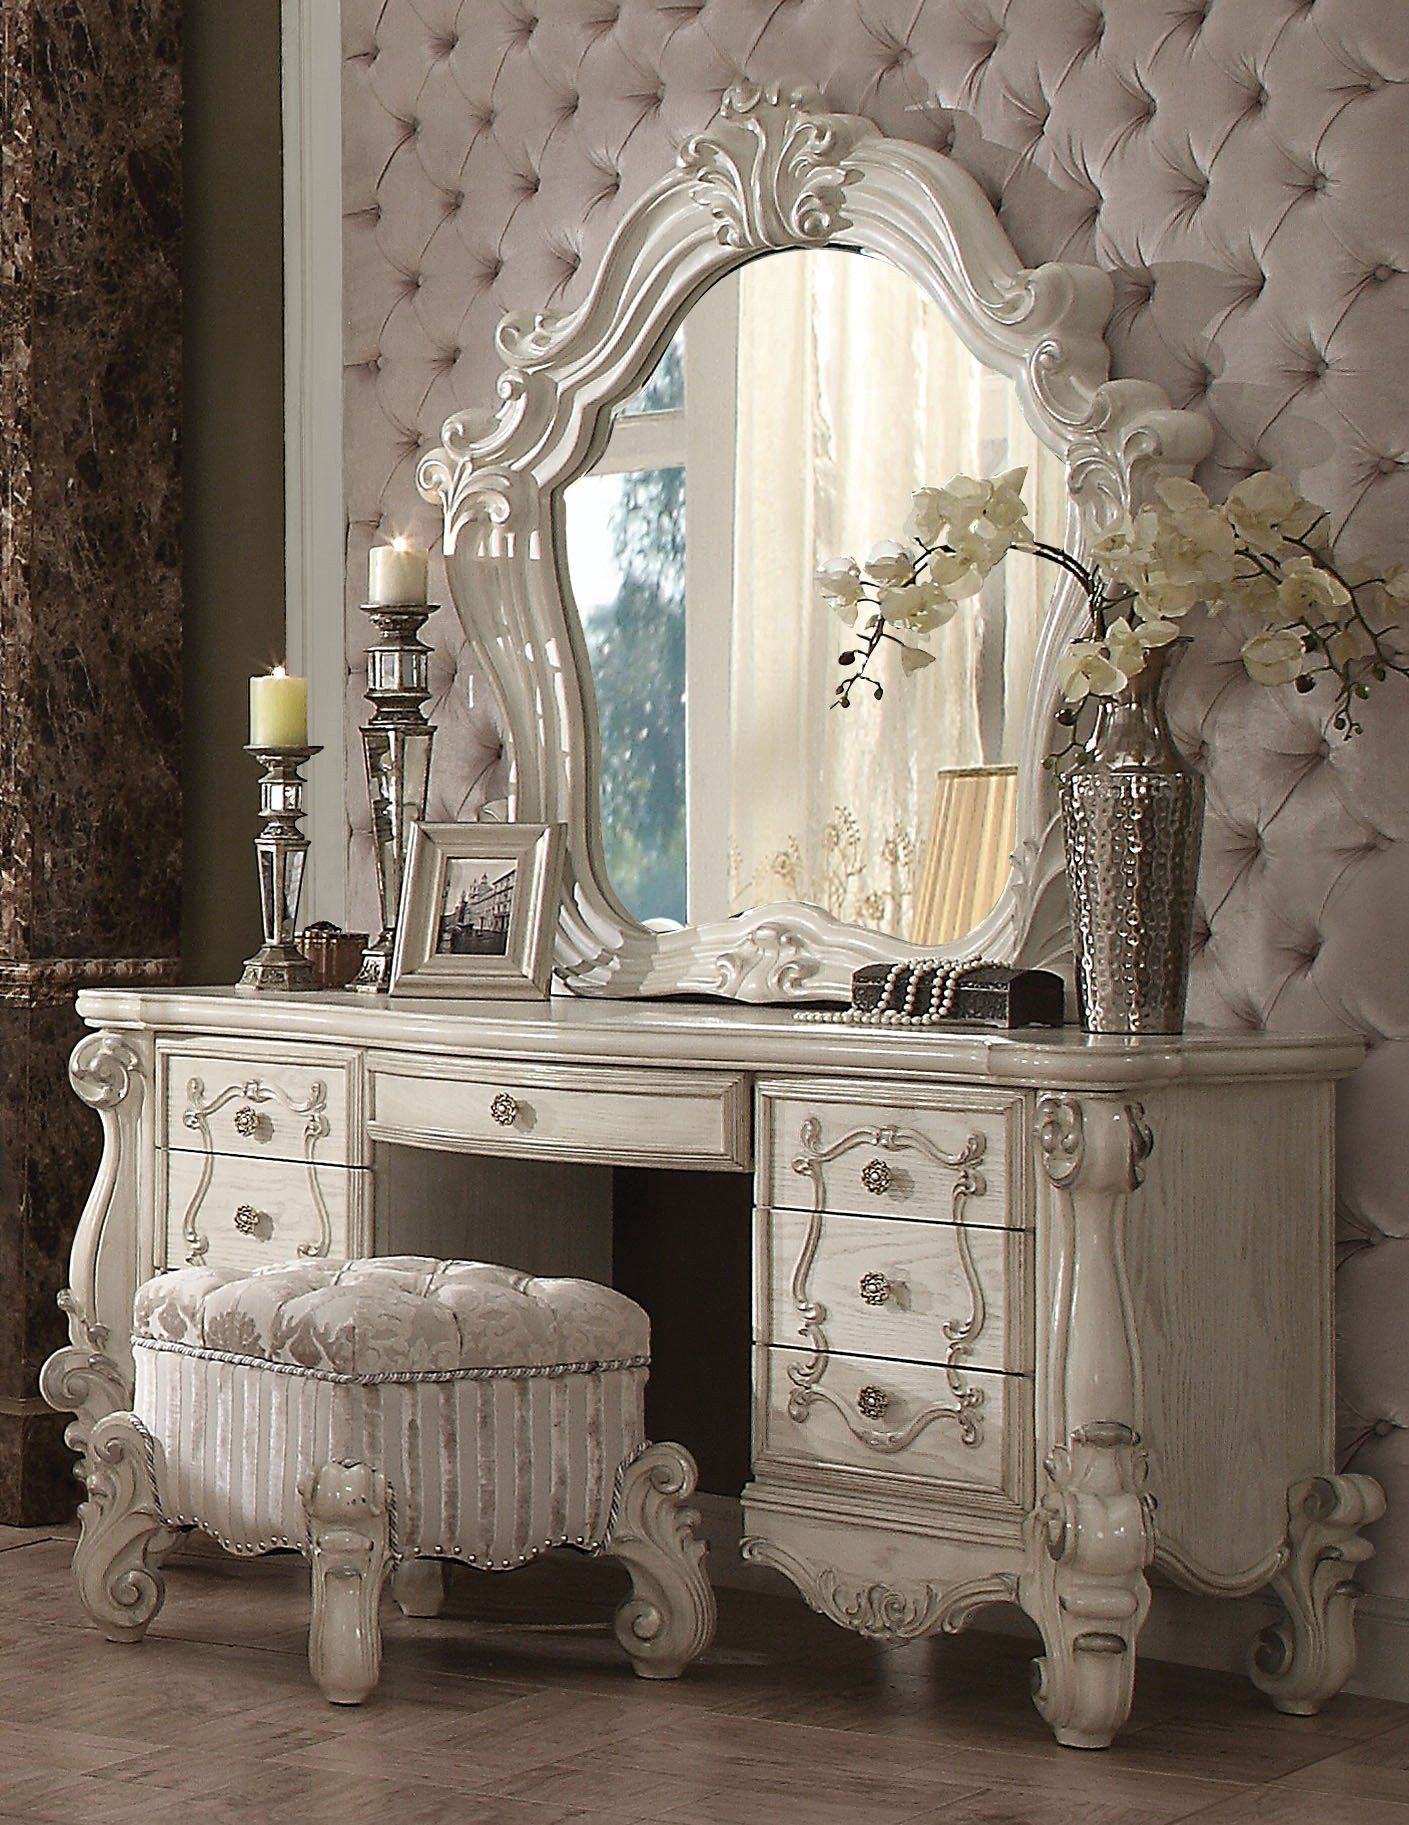 Acme versailles pcs bone white dresser vanity set stool